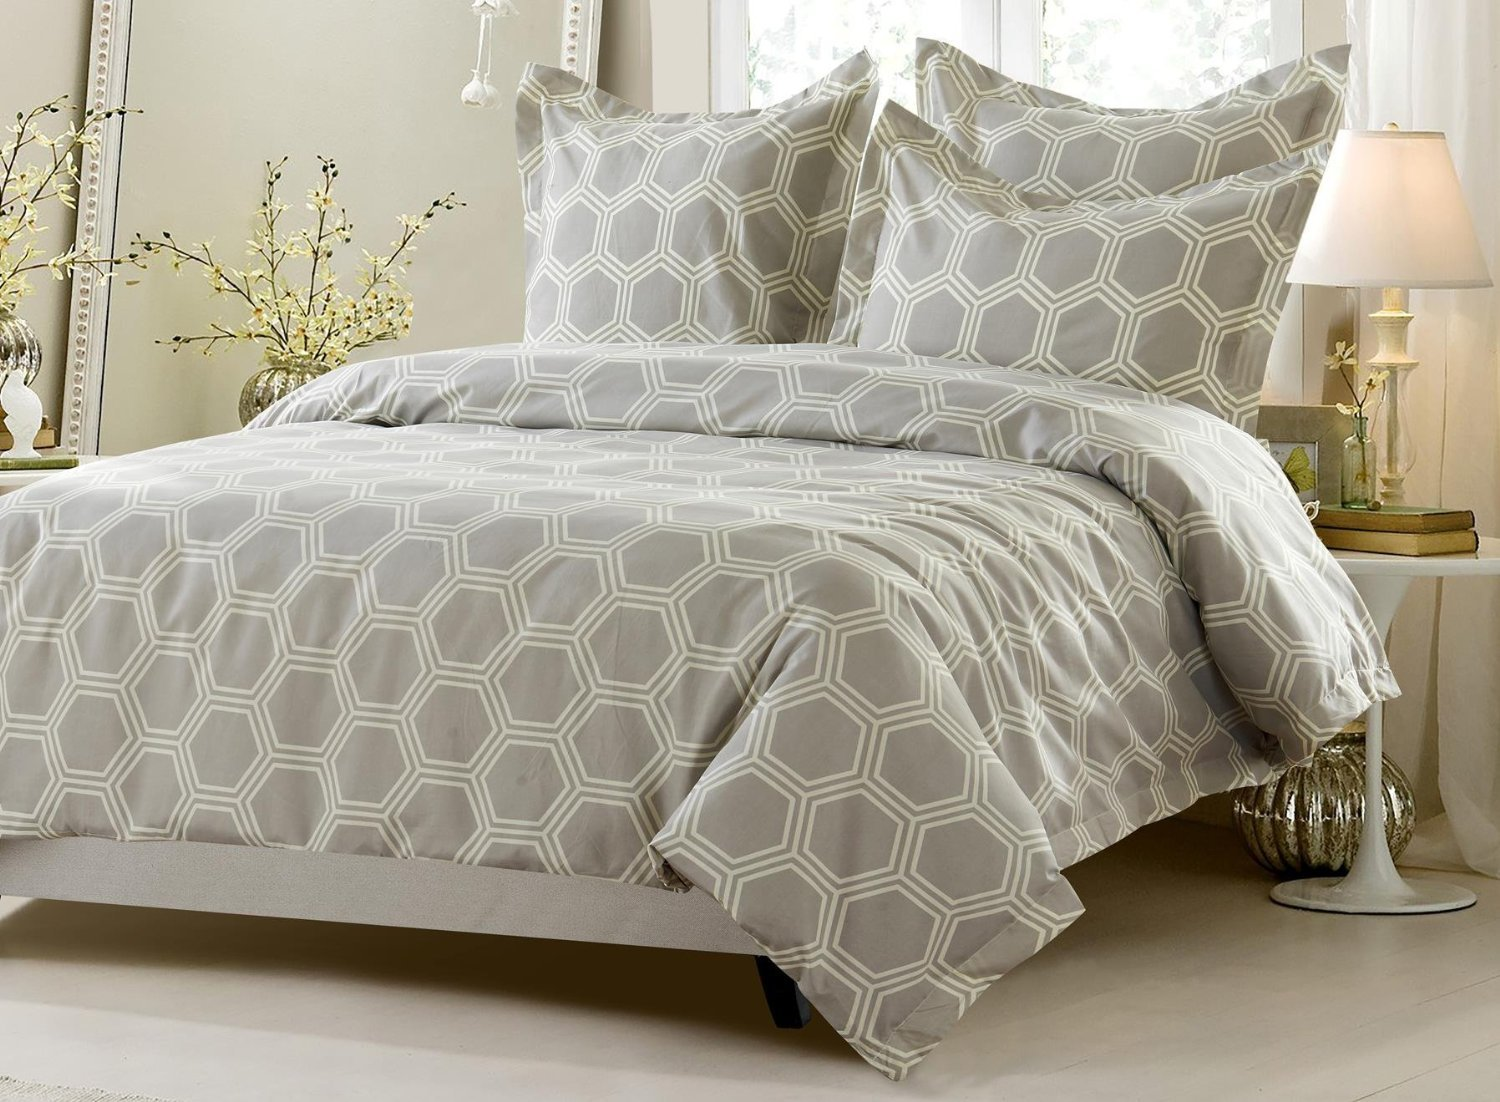 6pc Beige Hexagon Design Bedding Set